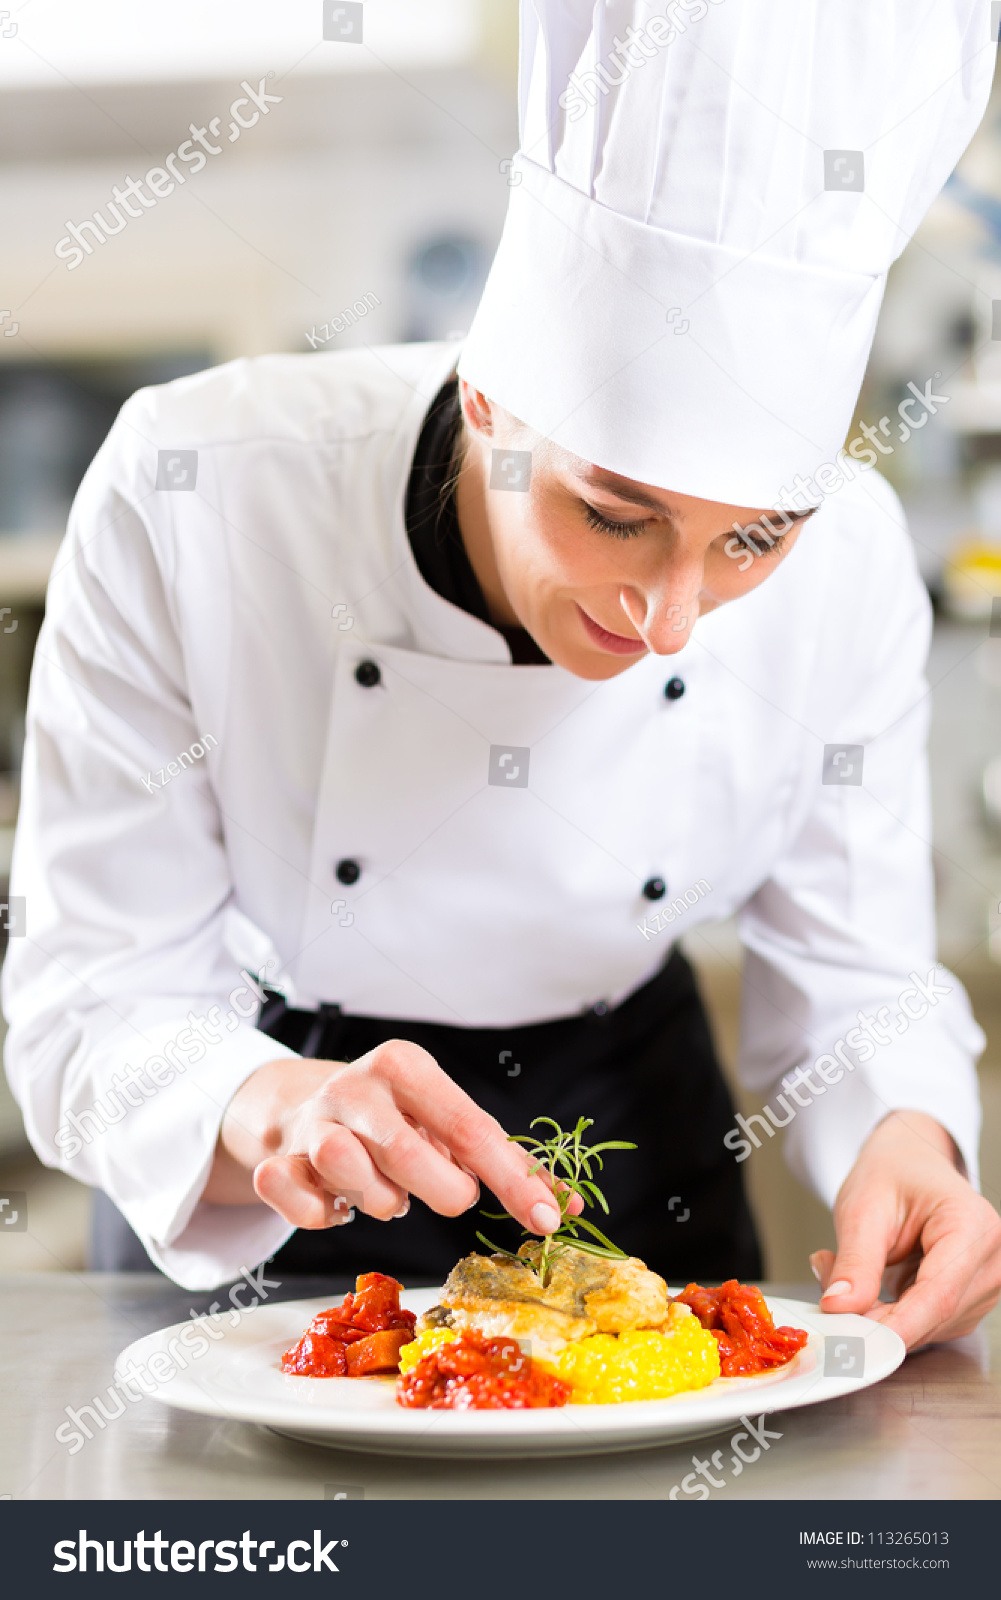 Female Chef Hotel Restaurant Kitchen Cooking Stock Photo (Safe to ...